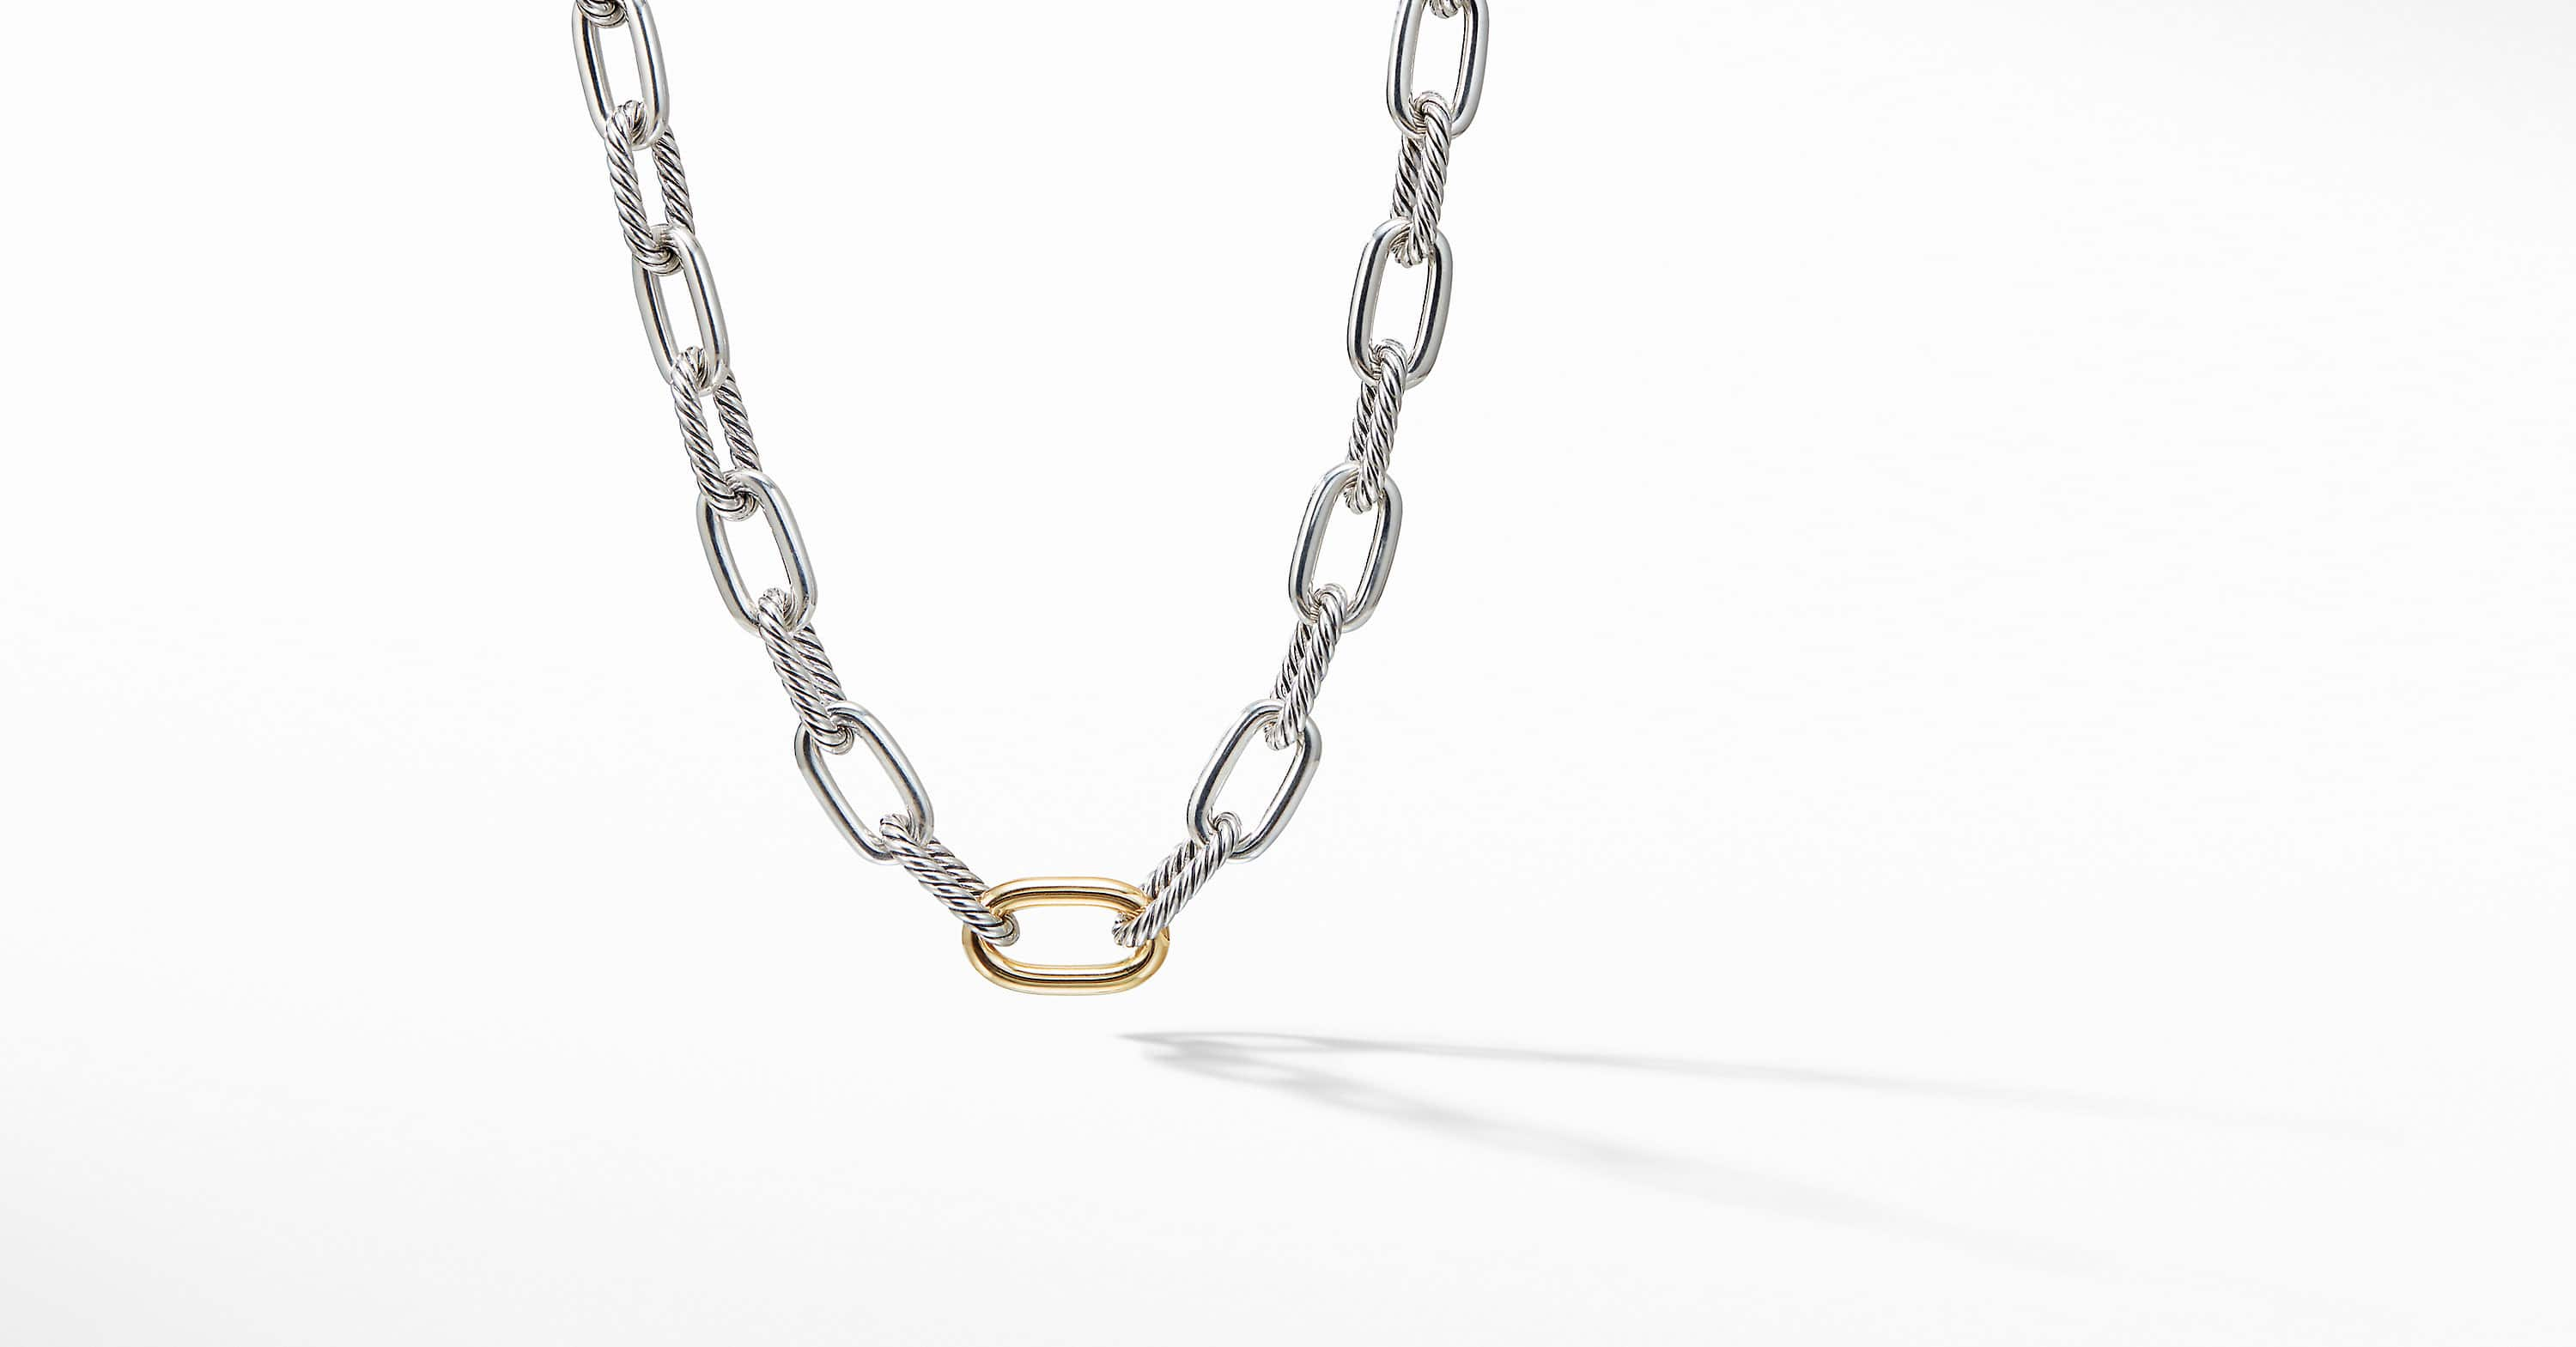 DY Madison Chain Medium Necklace with 18K Gold, 11mm